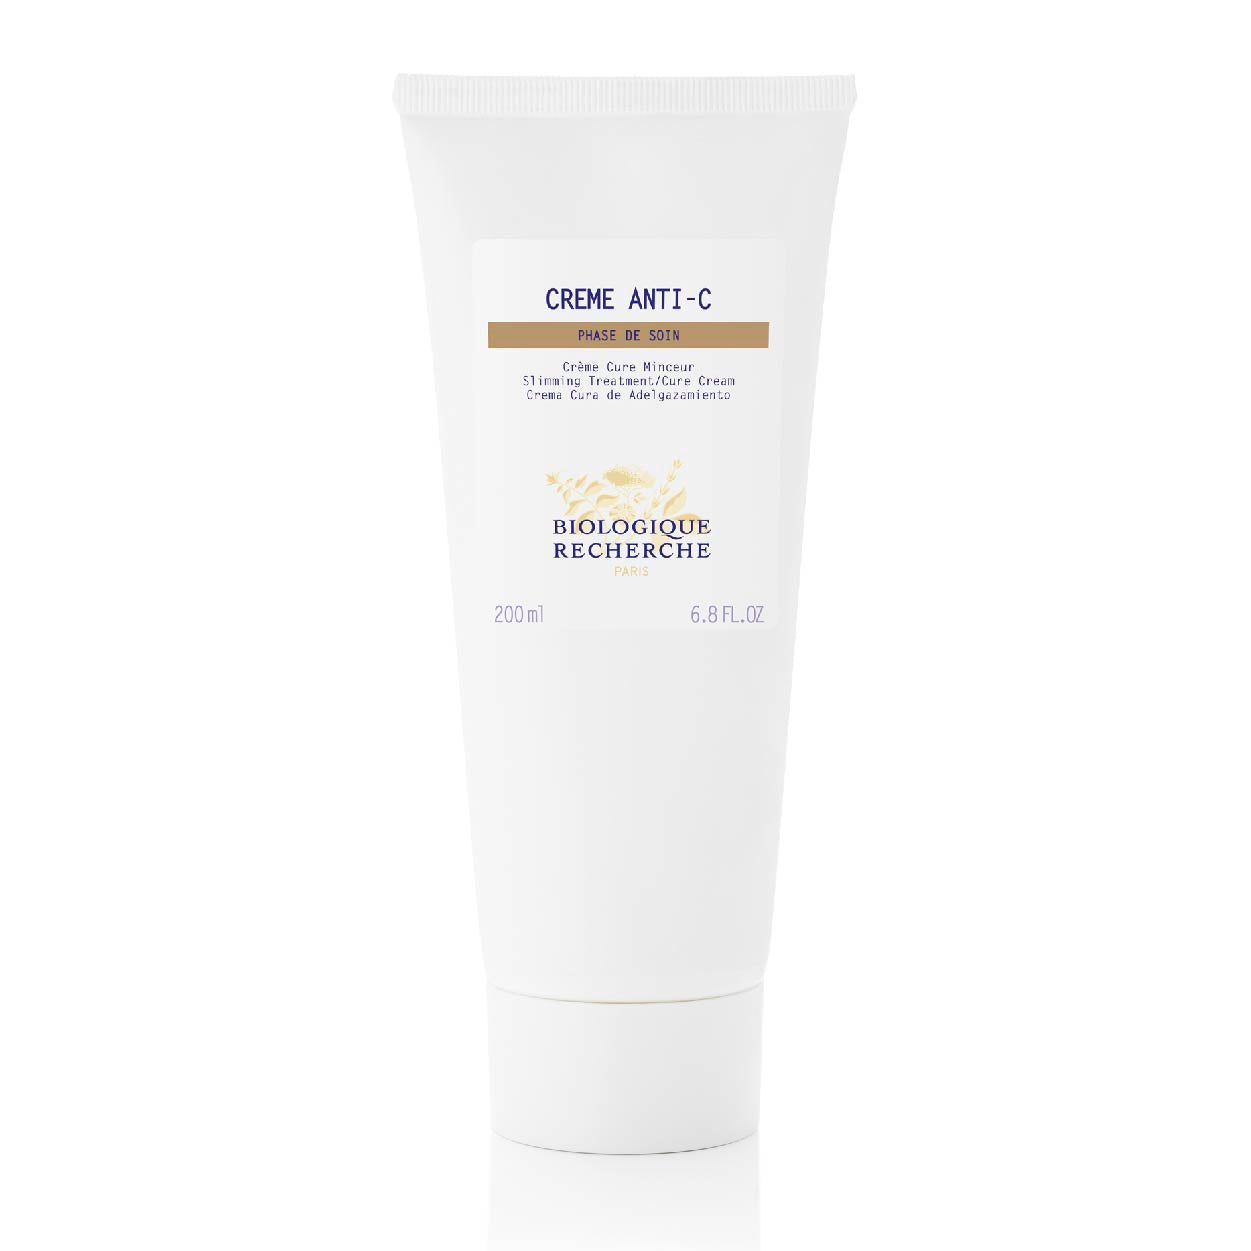 Biologique Recherche - Creme Anti-C   <br>  (FOR ANTI-CELLULITE AND FIRMING)